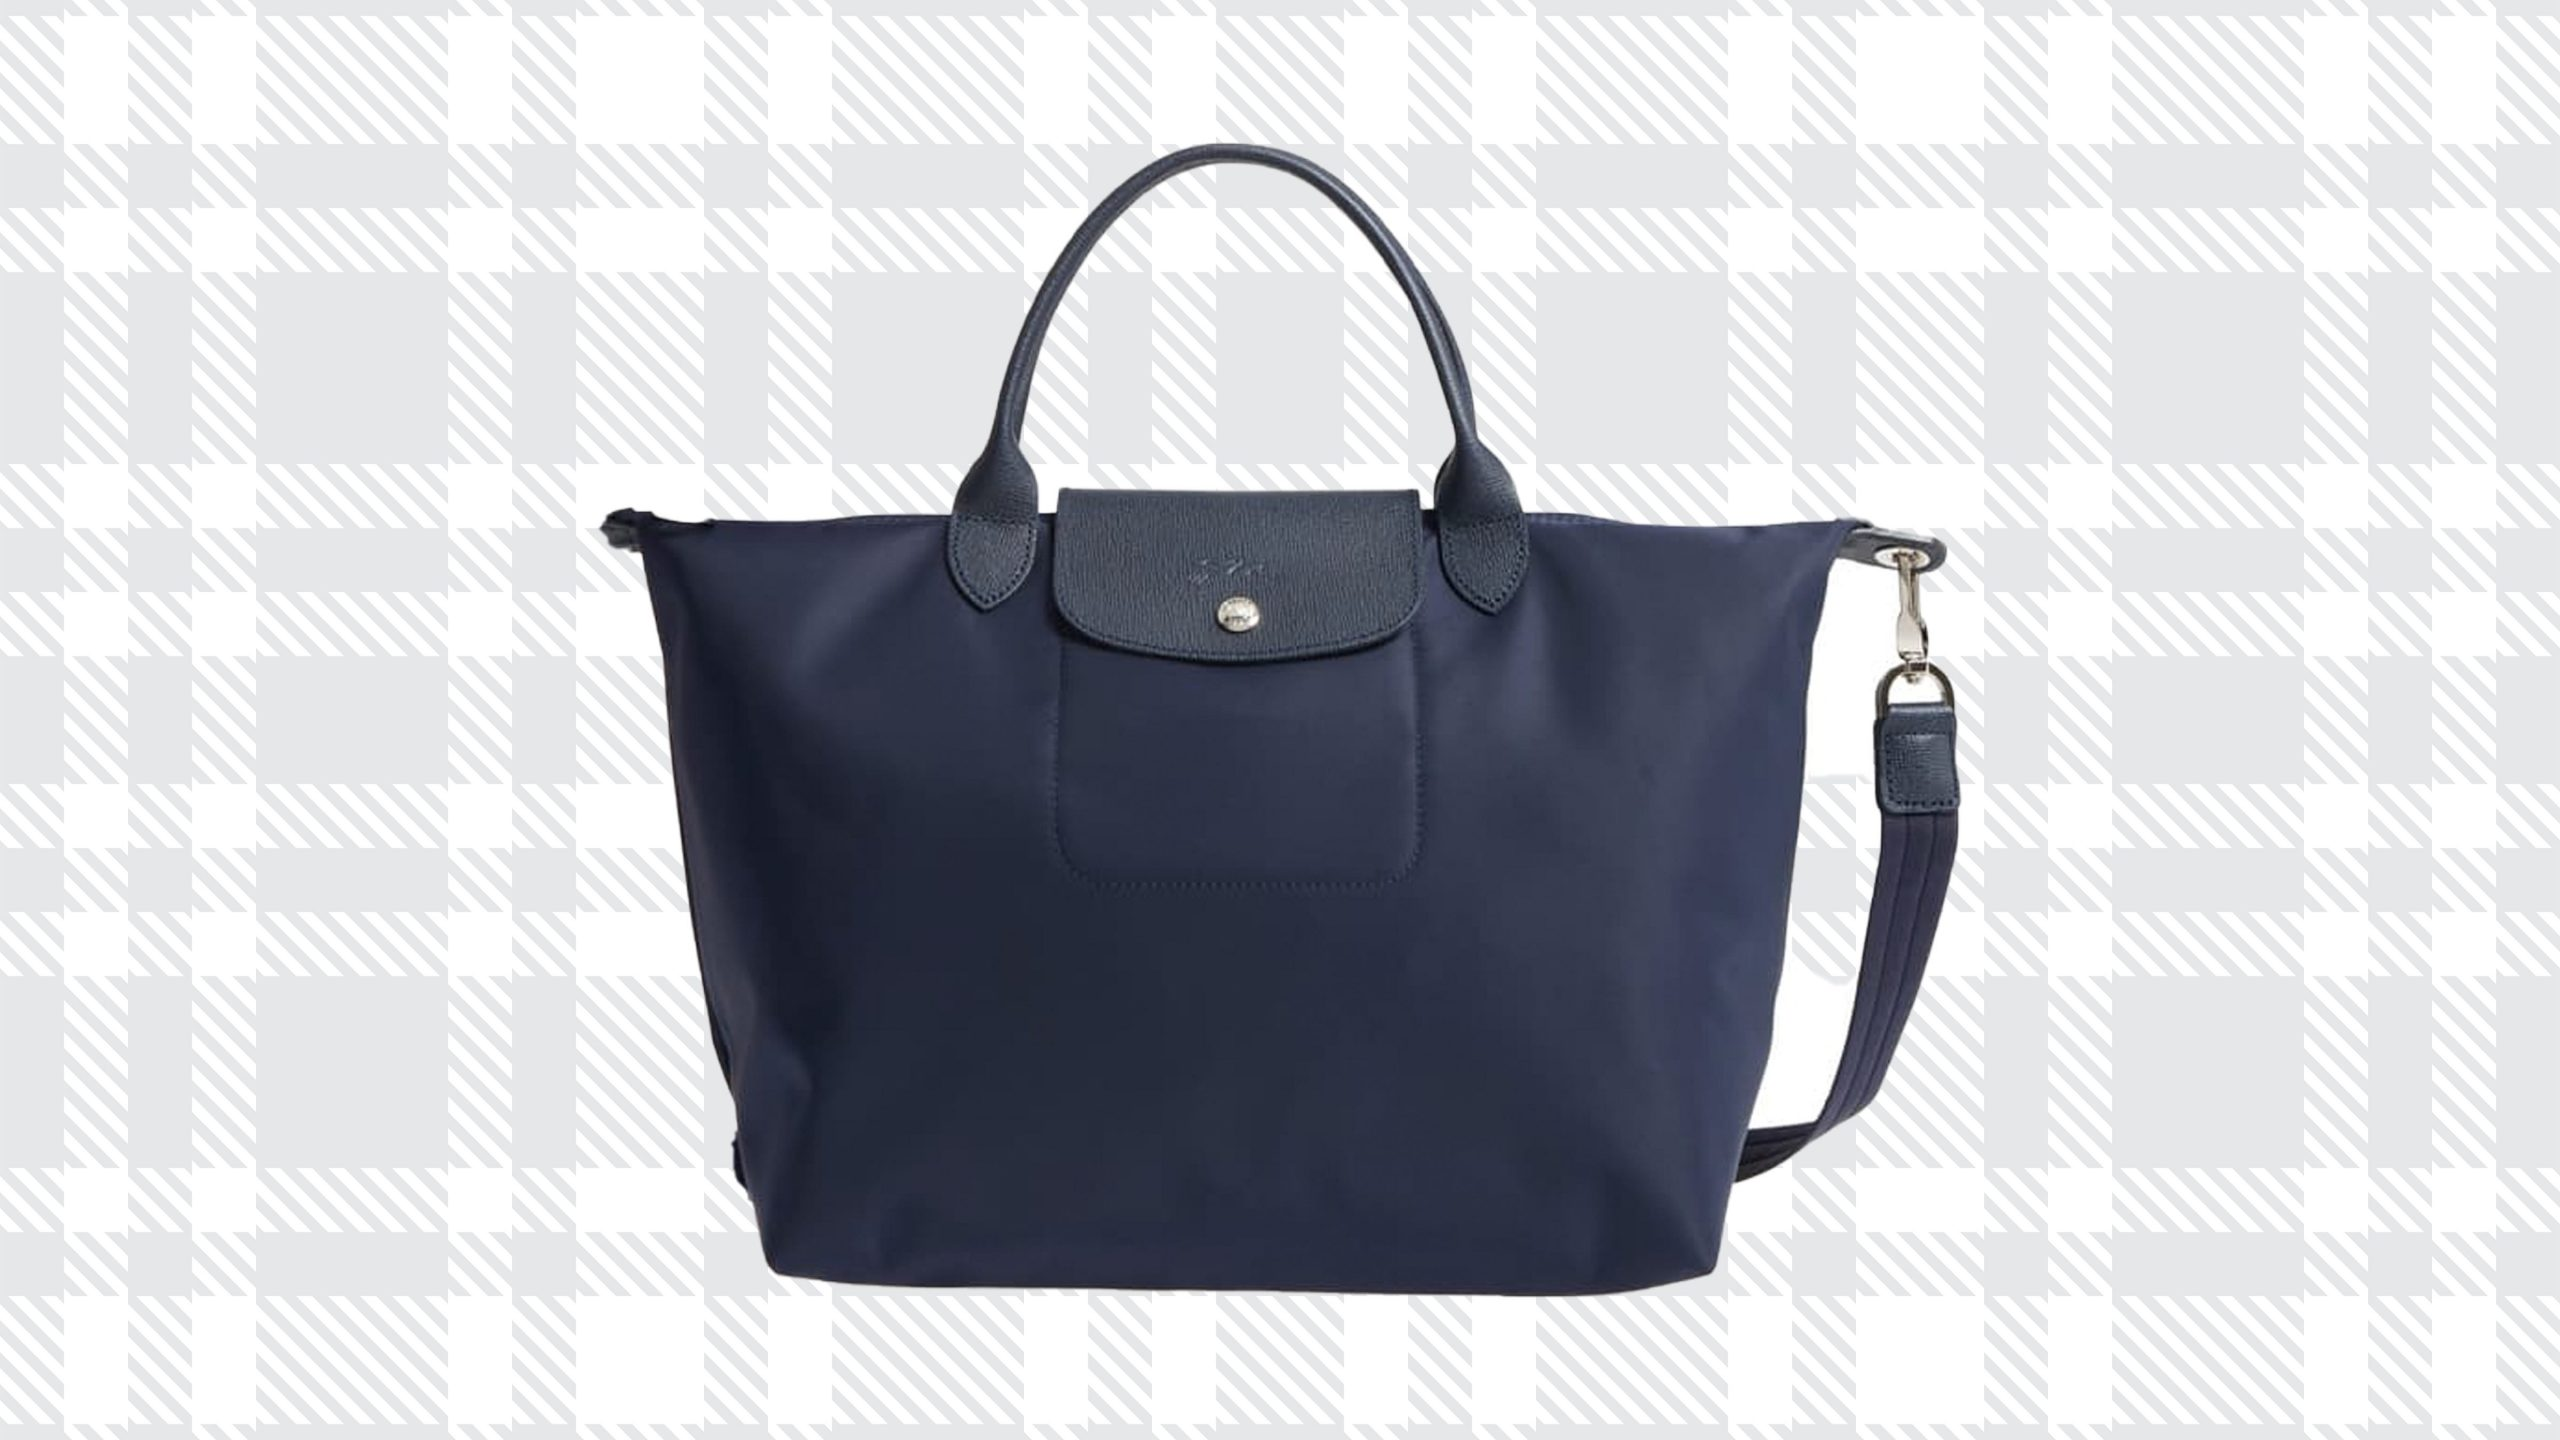 Tons of Longchamp bags are on sale right now at Nordstrom Rack